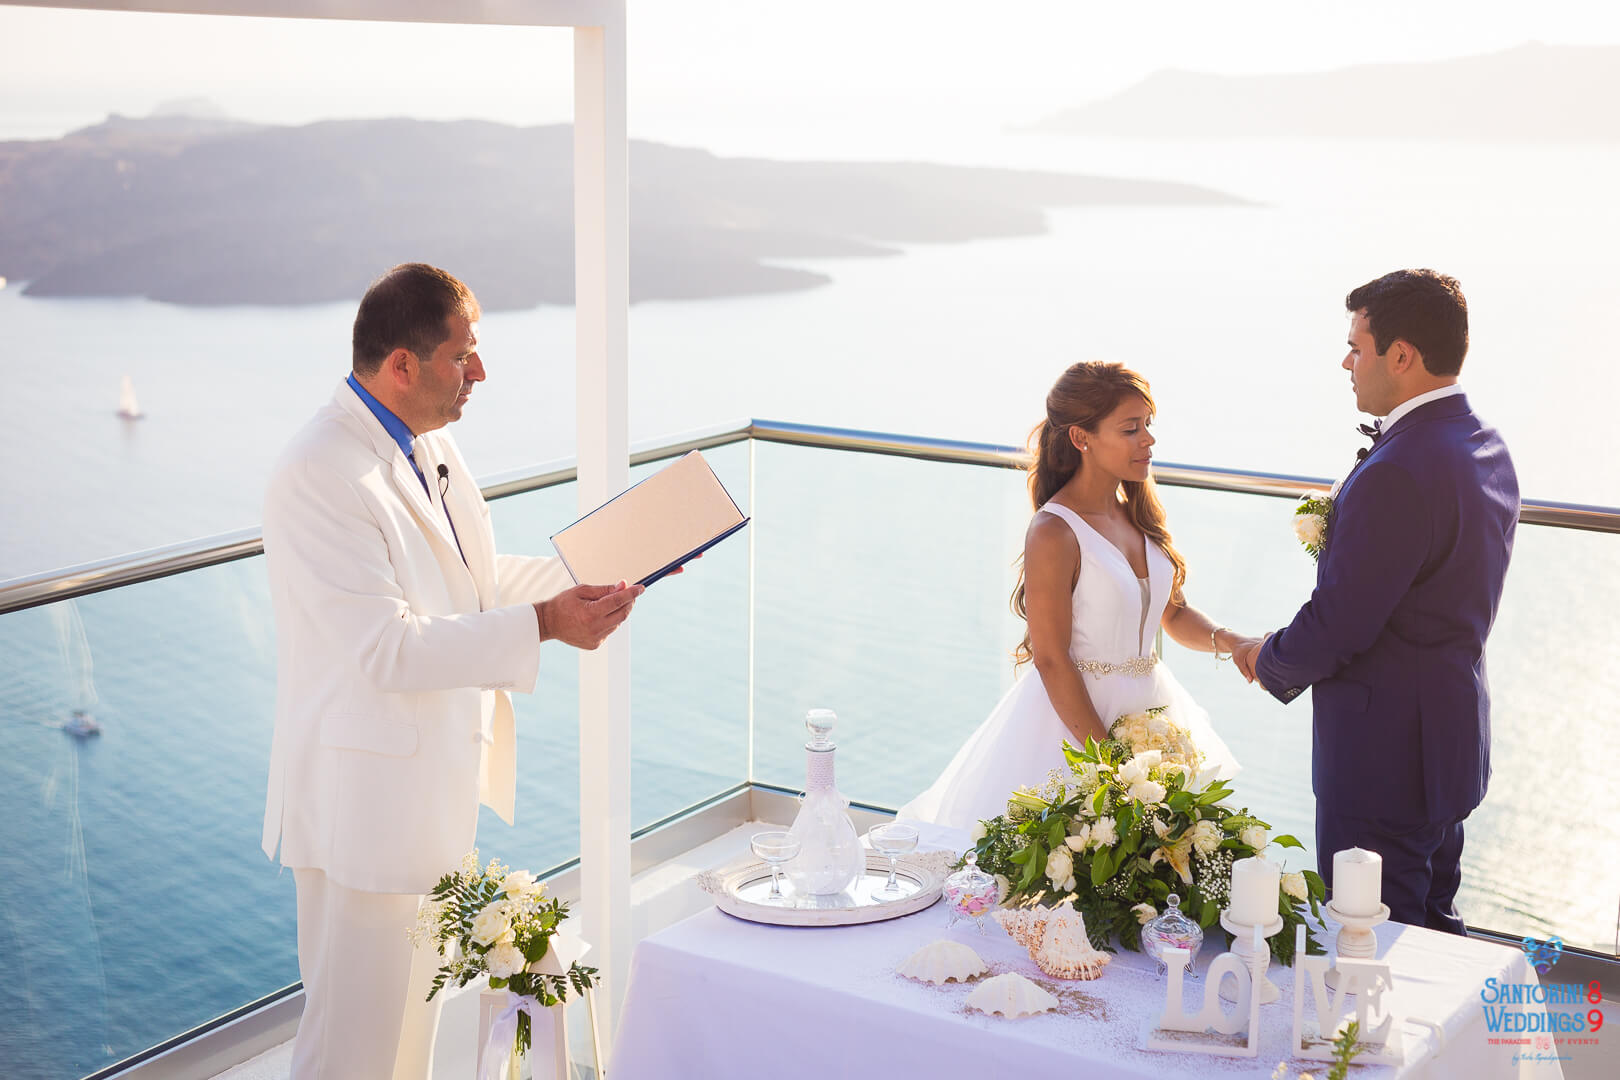 Santorini8 Weddings9 IG 39